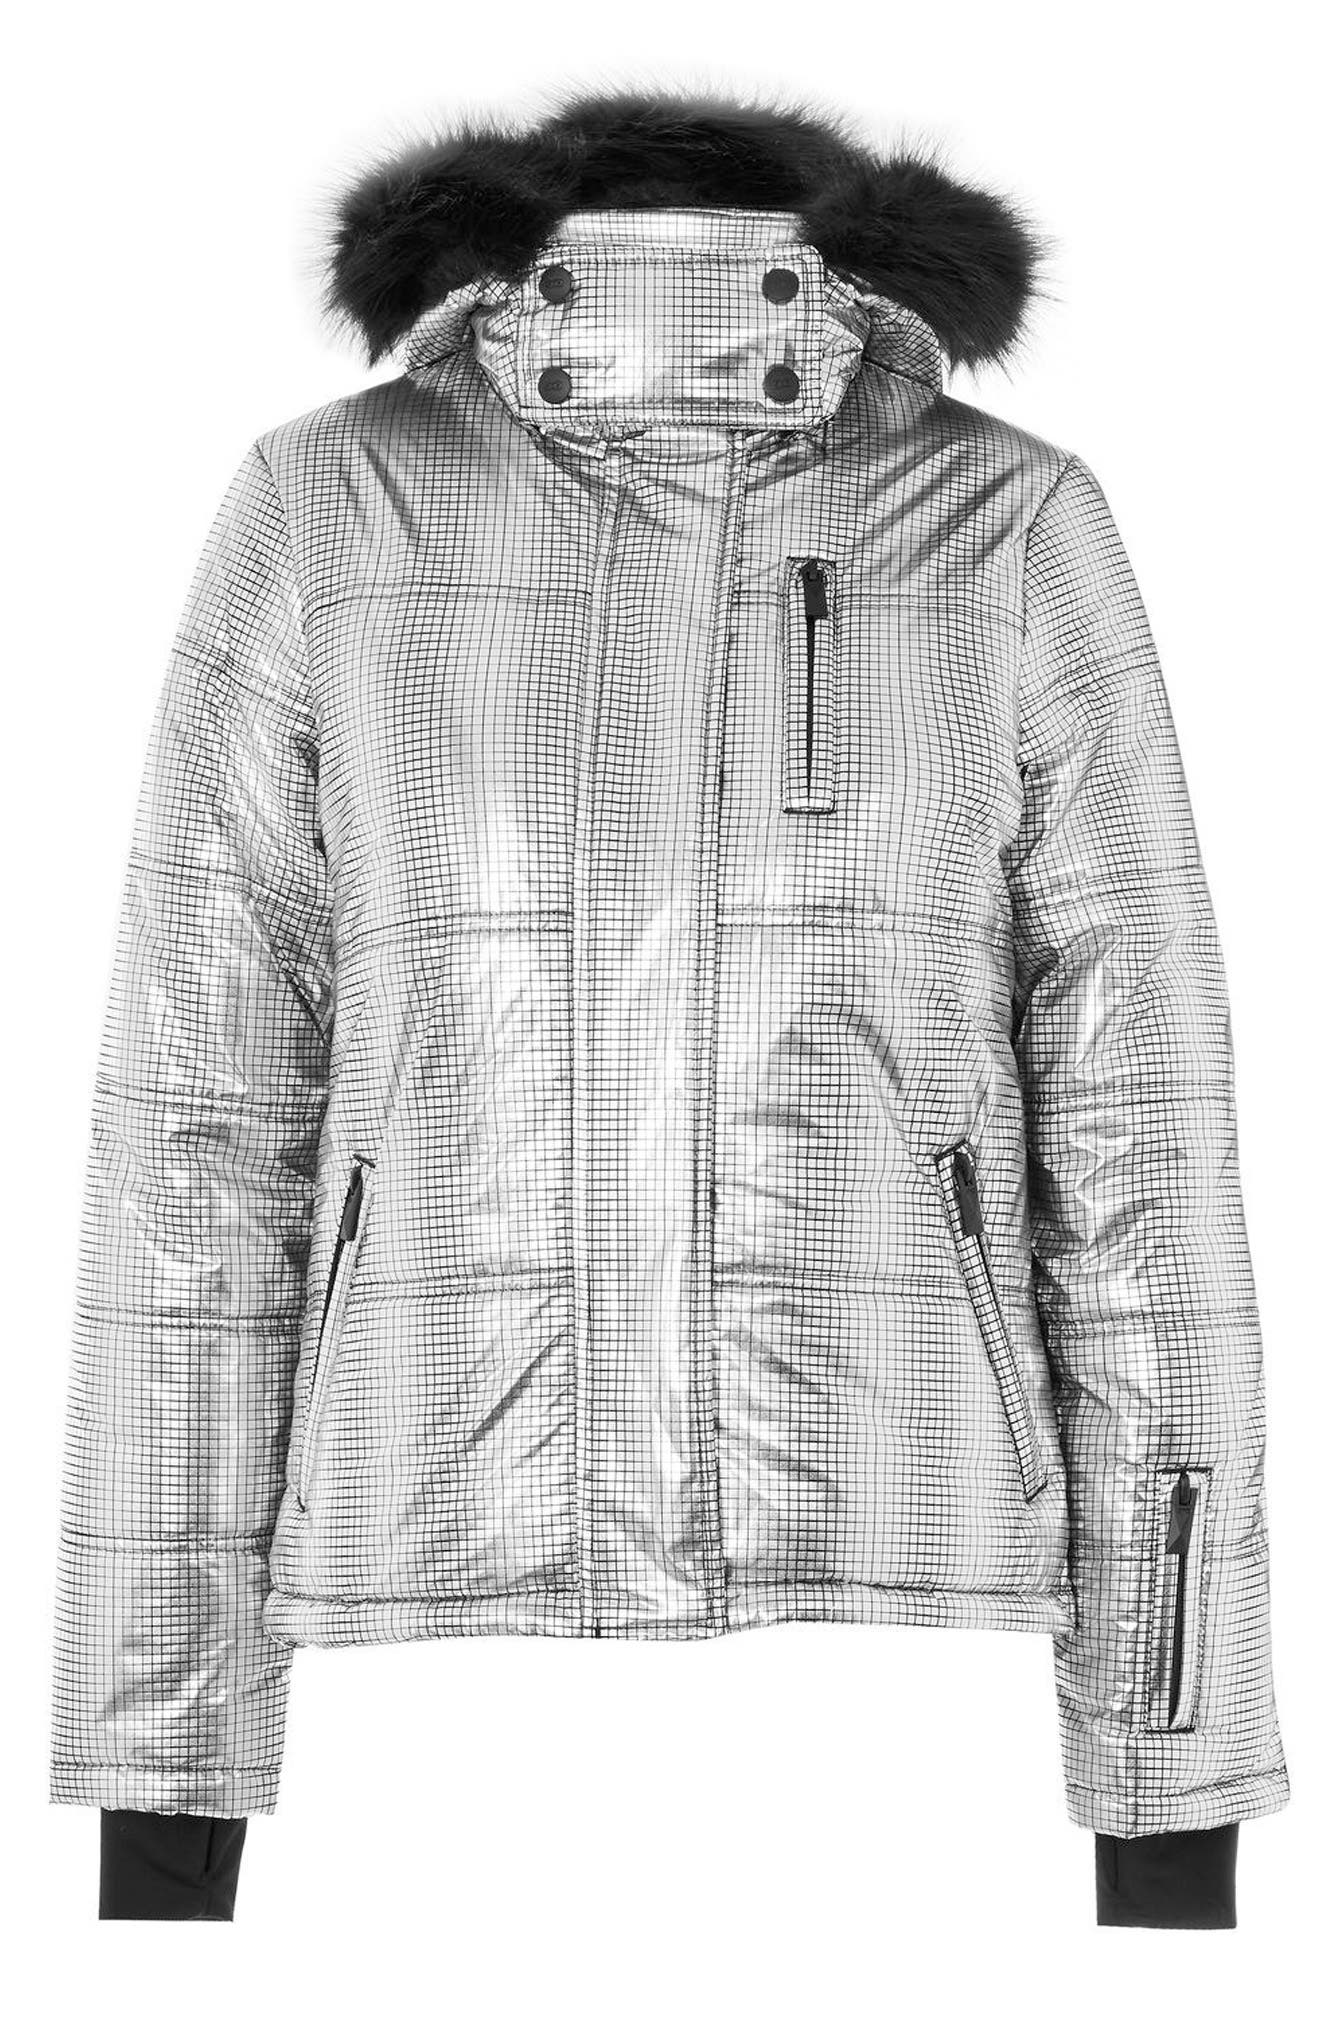 SNO Rio Faux Fur Hood Metallic Puffer Jacket,                             Alternate thumbnail 9, color,                             Silver